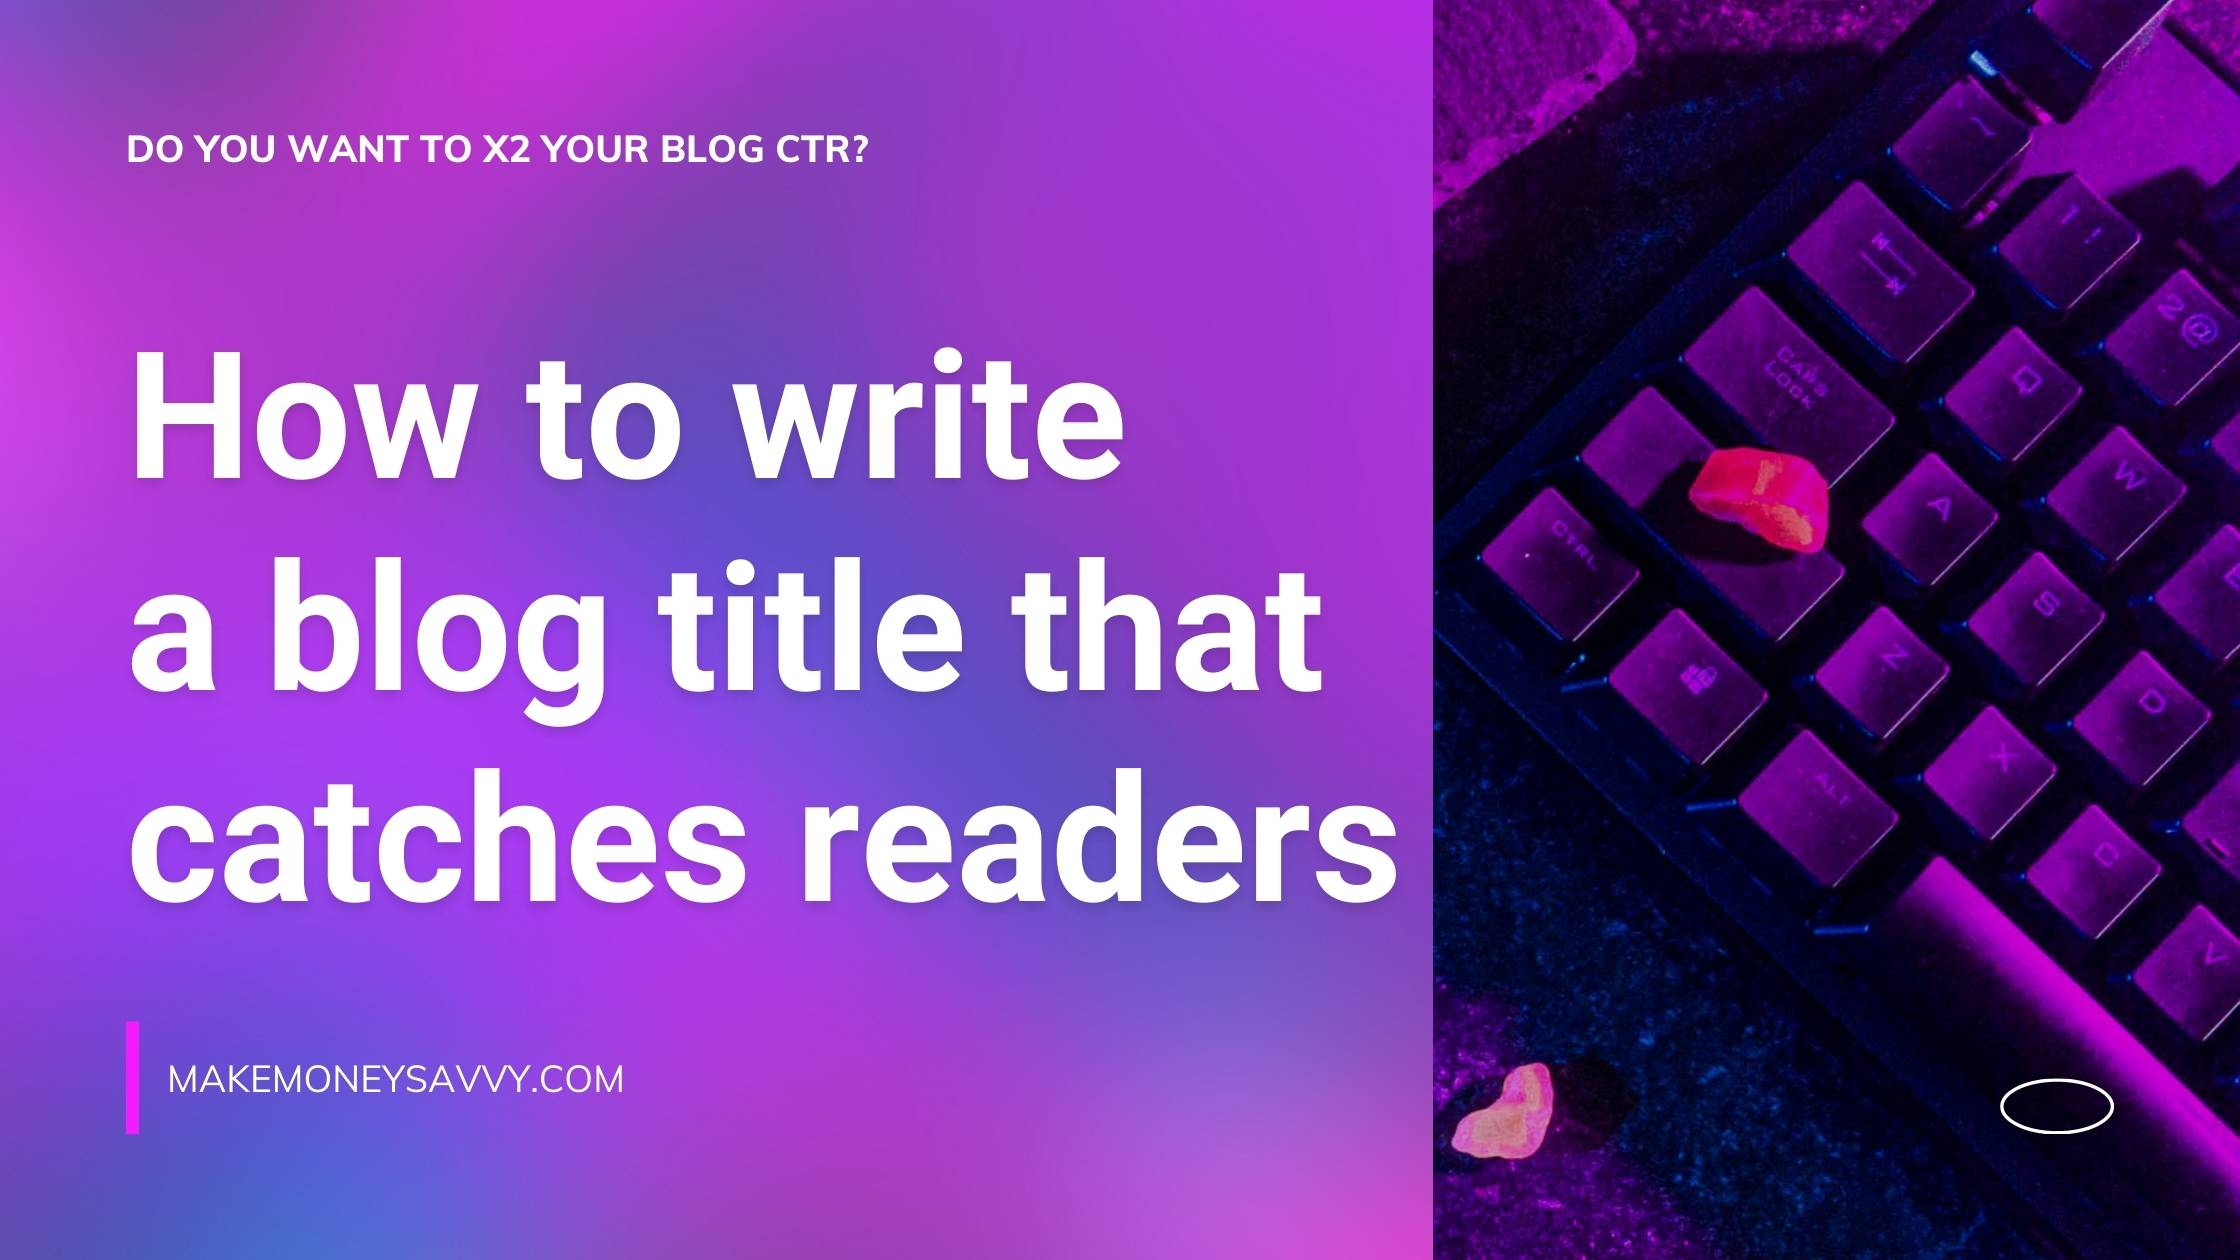 How to write a blog title that catches readers